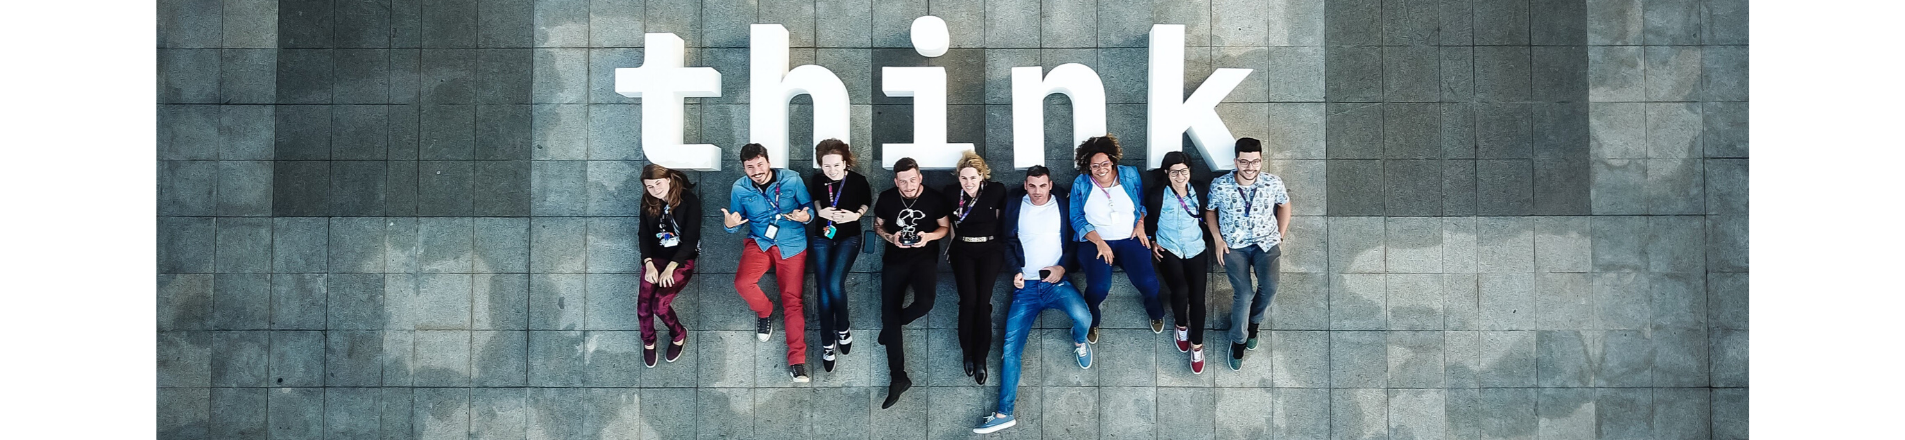 9 young IBM staff laying on the floor looking up with the work 'think' underneath them.